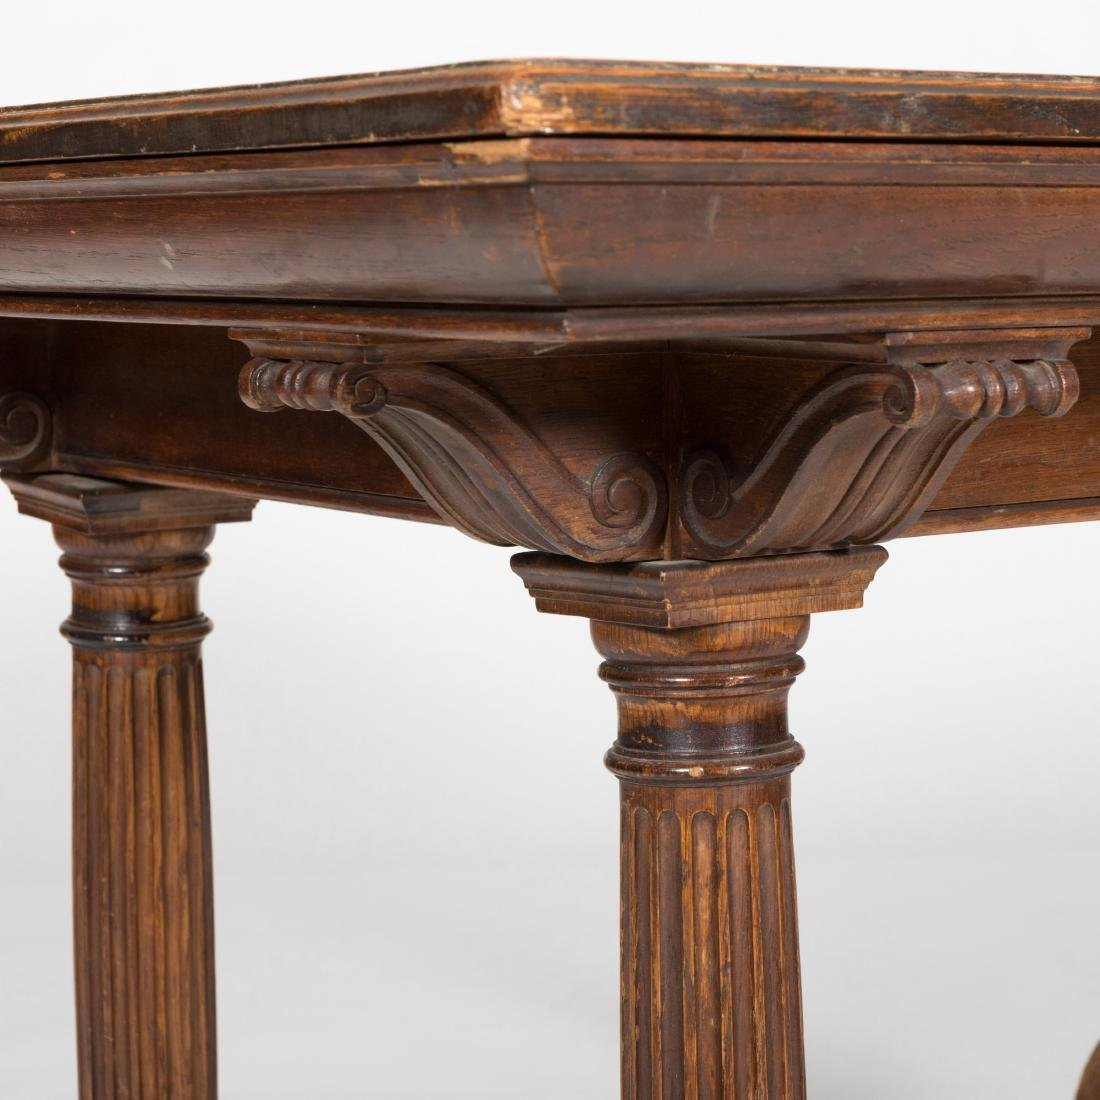 Oak Library Table with Footed Legs - 2